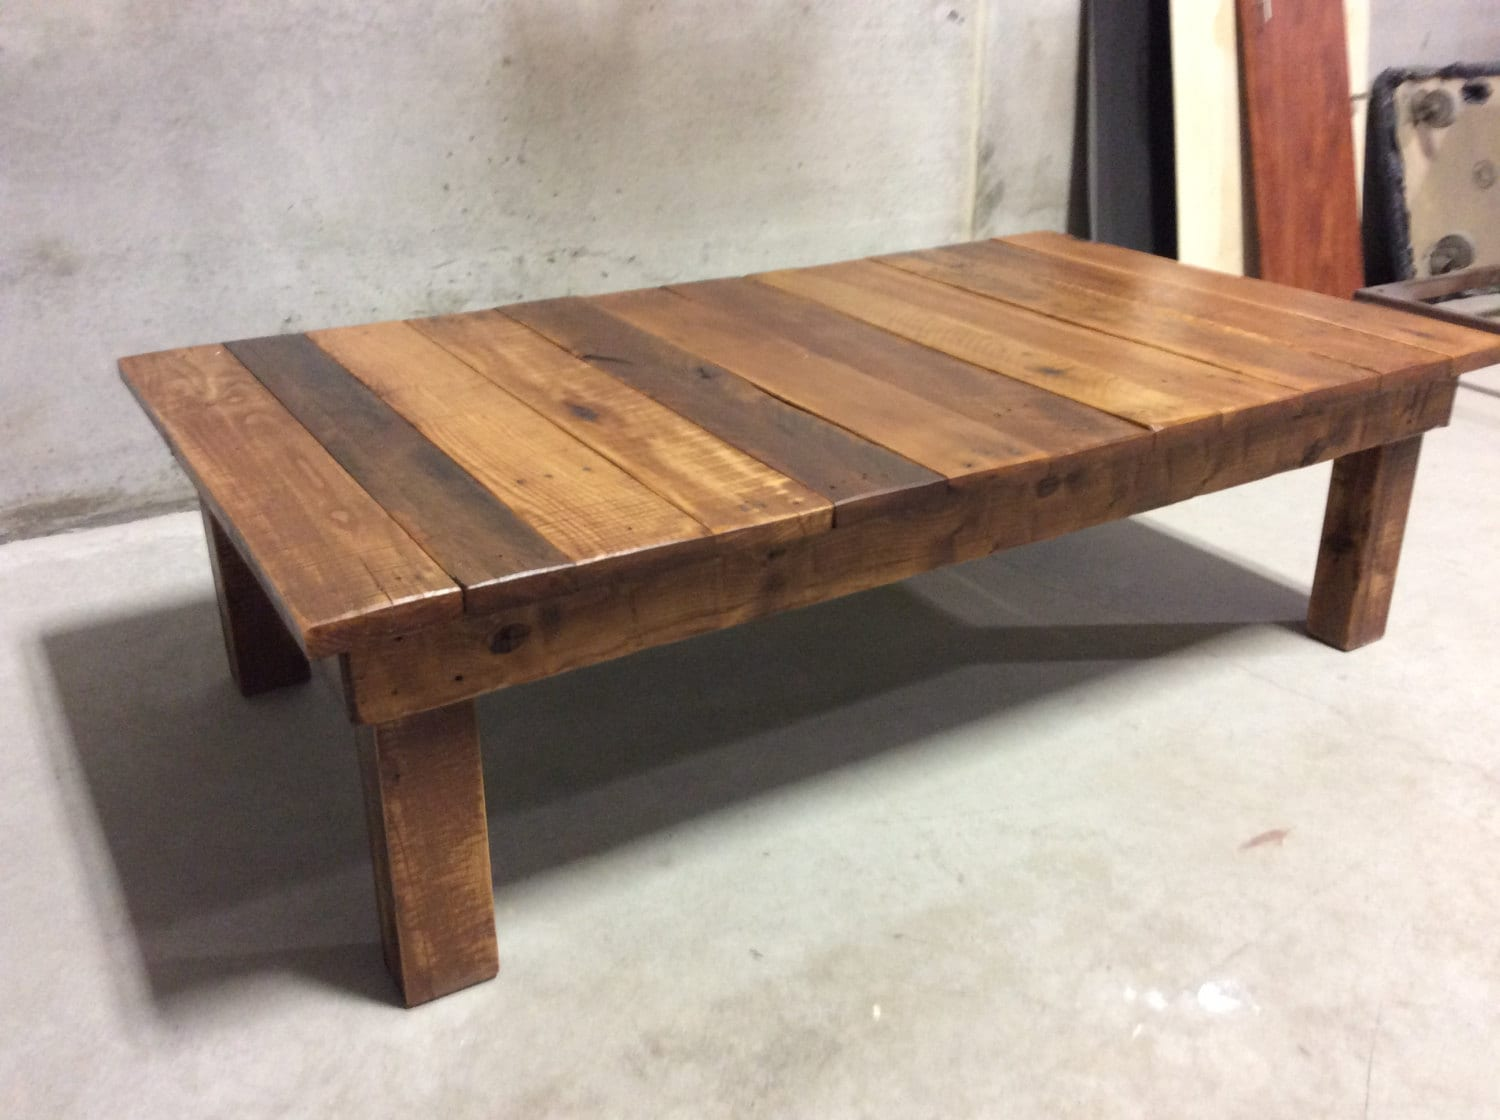 Large reclaimed wood coffee table Recycled wood coffee table